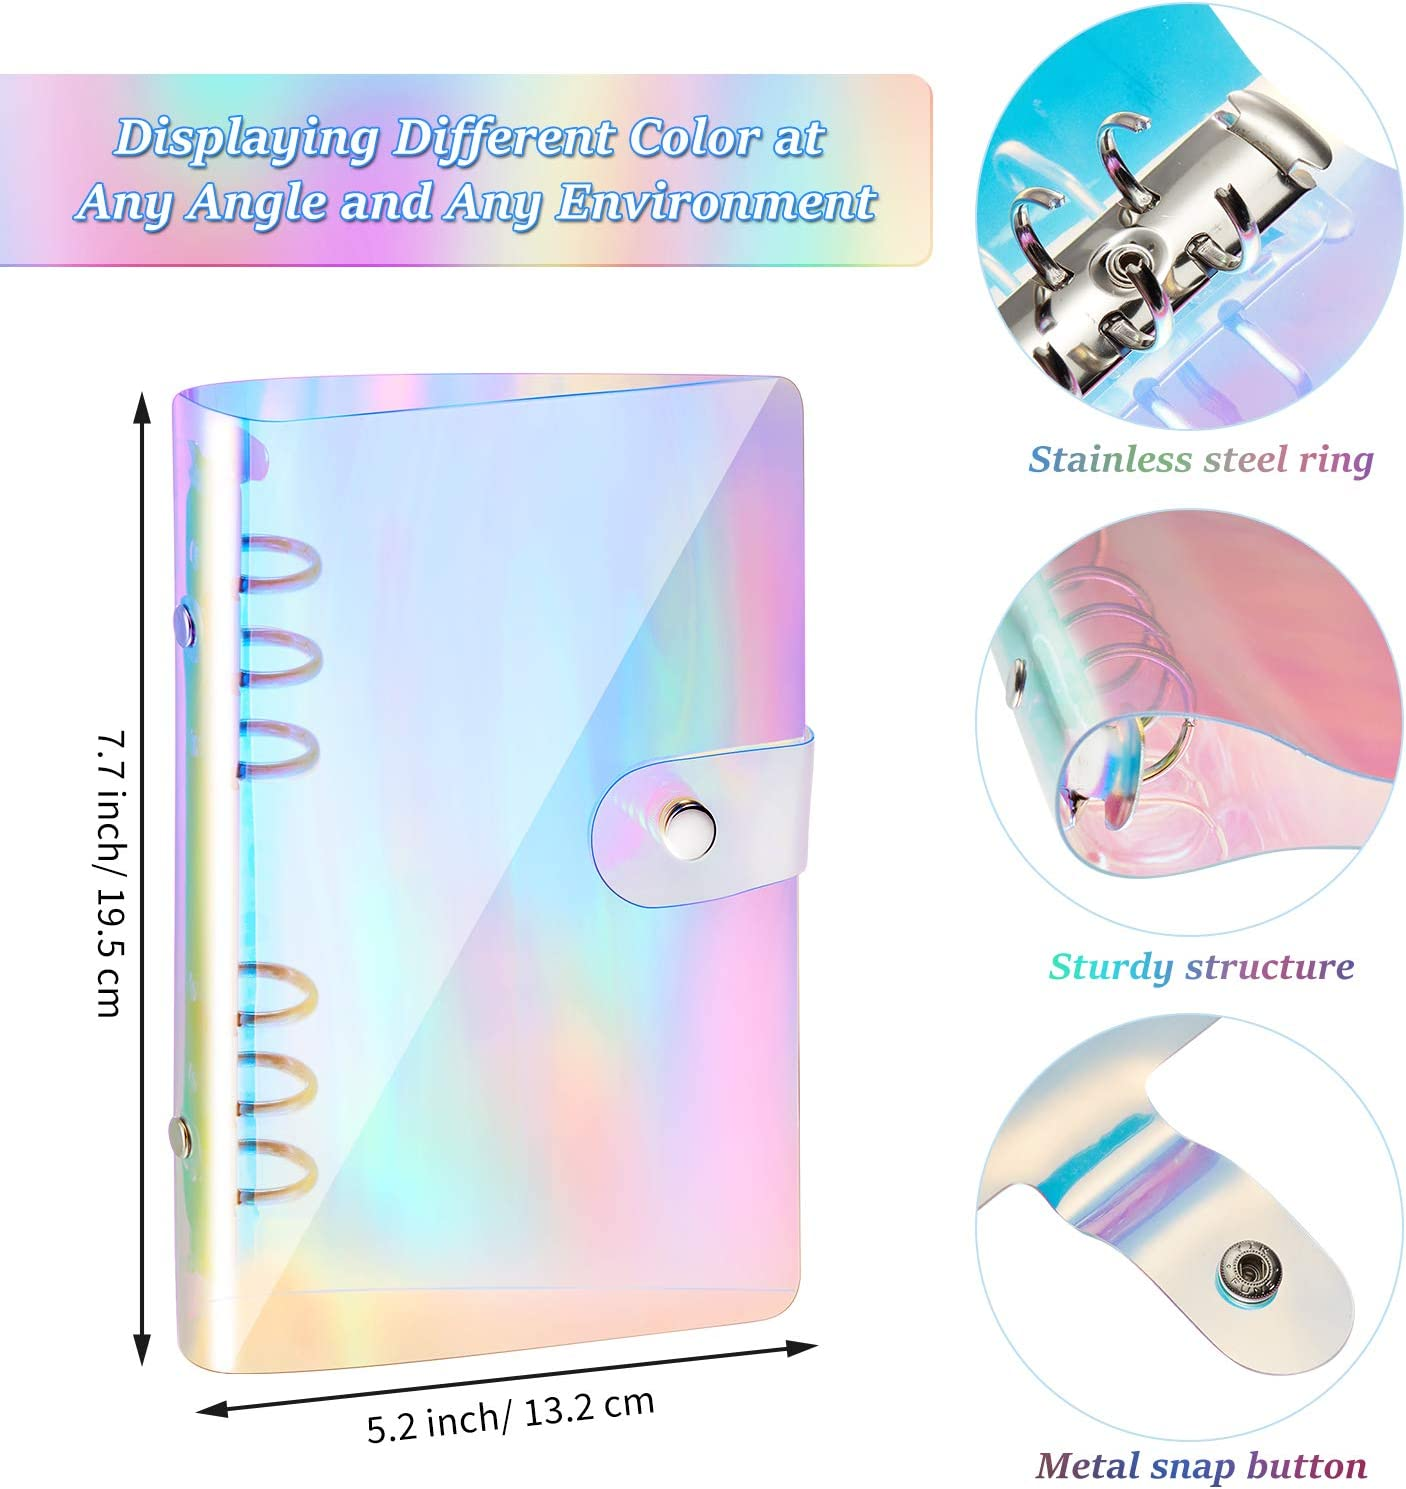 A6 6-Ring Rainbow Soft PVC Notebook Cover/Binder Cover Colorful Round Ring Protector with Snap Button Closure/12 Binder Pockets A6 Size 6 Holes Binder Zipper Folders and 1 Pack 45 A6 Loose Leaf Paper